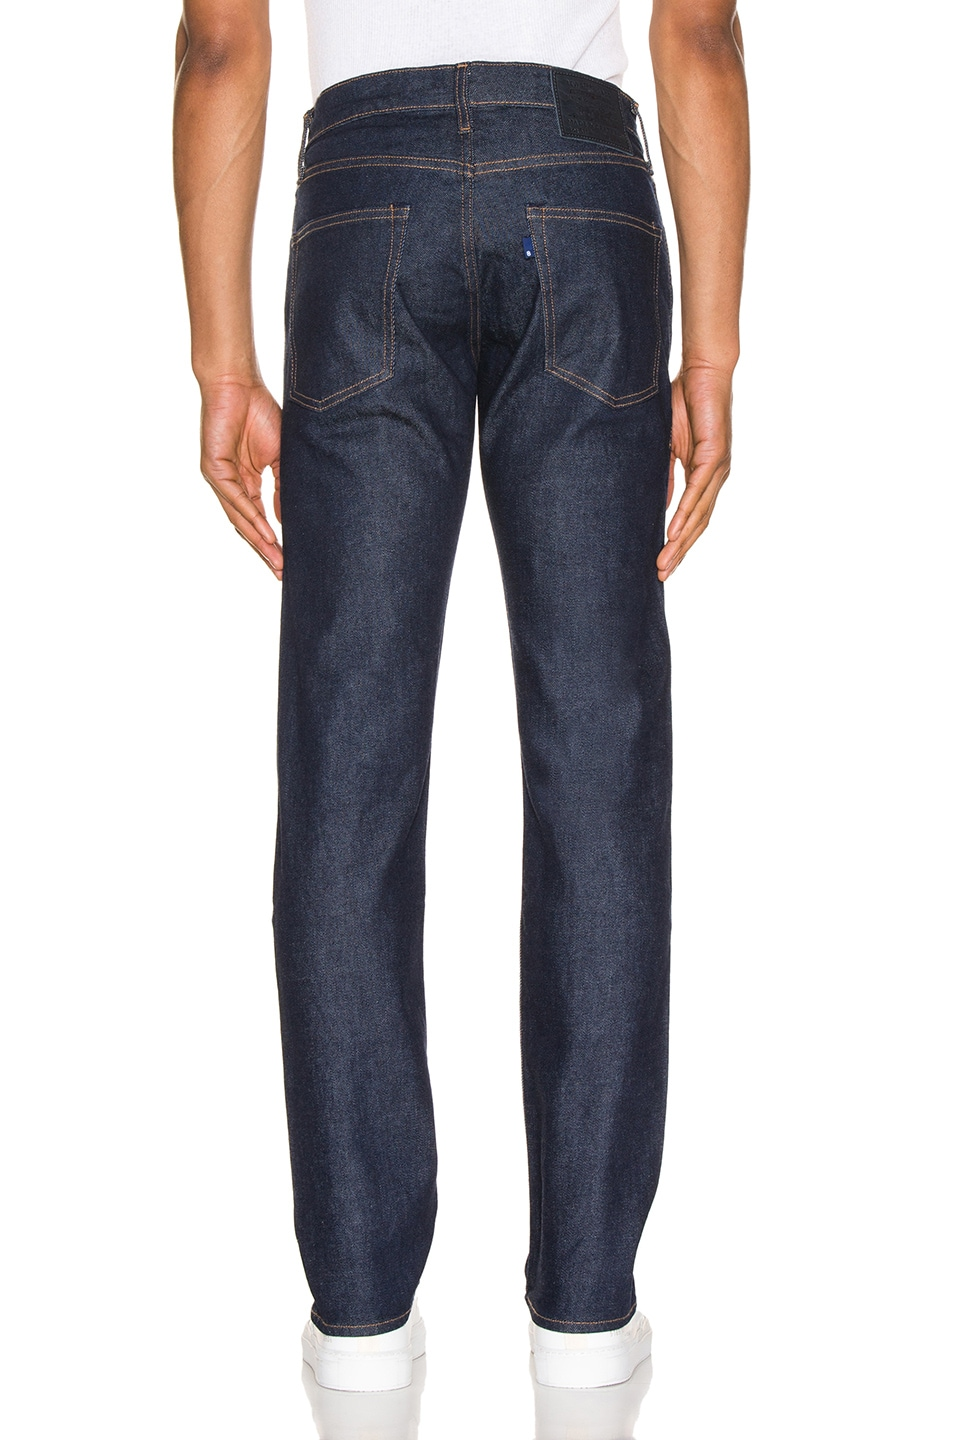 Image 3 of LEVI'S: Made & Crafted 511 in Resin Rinse Stretch Selvedge